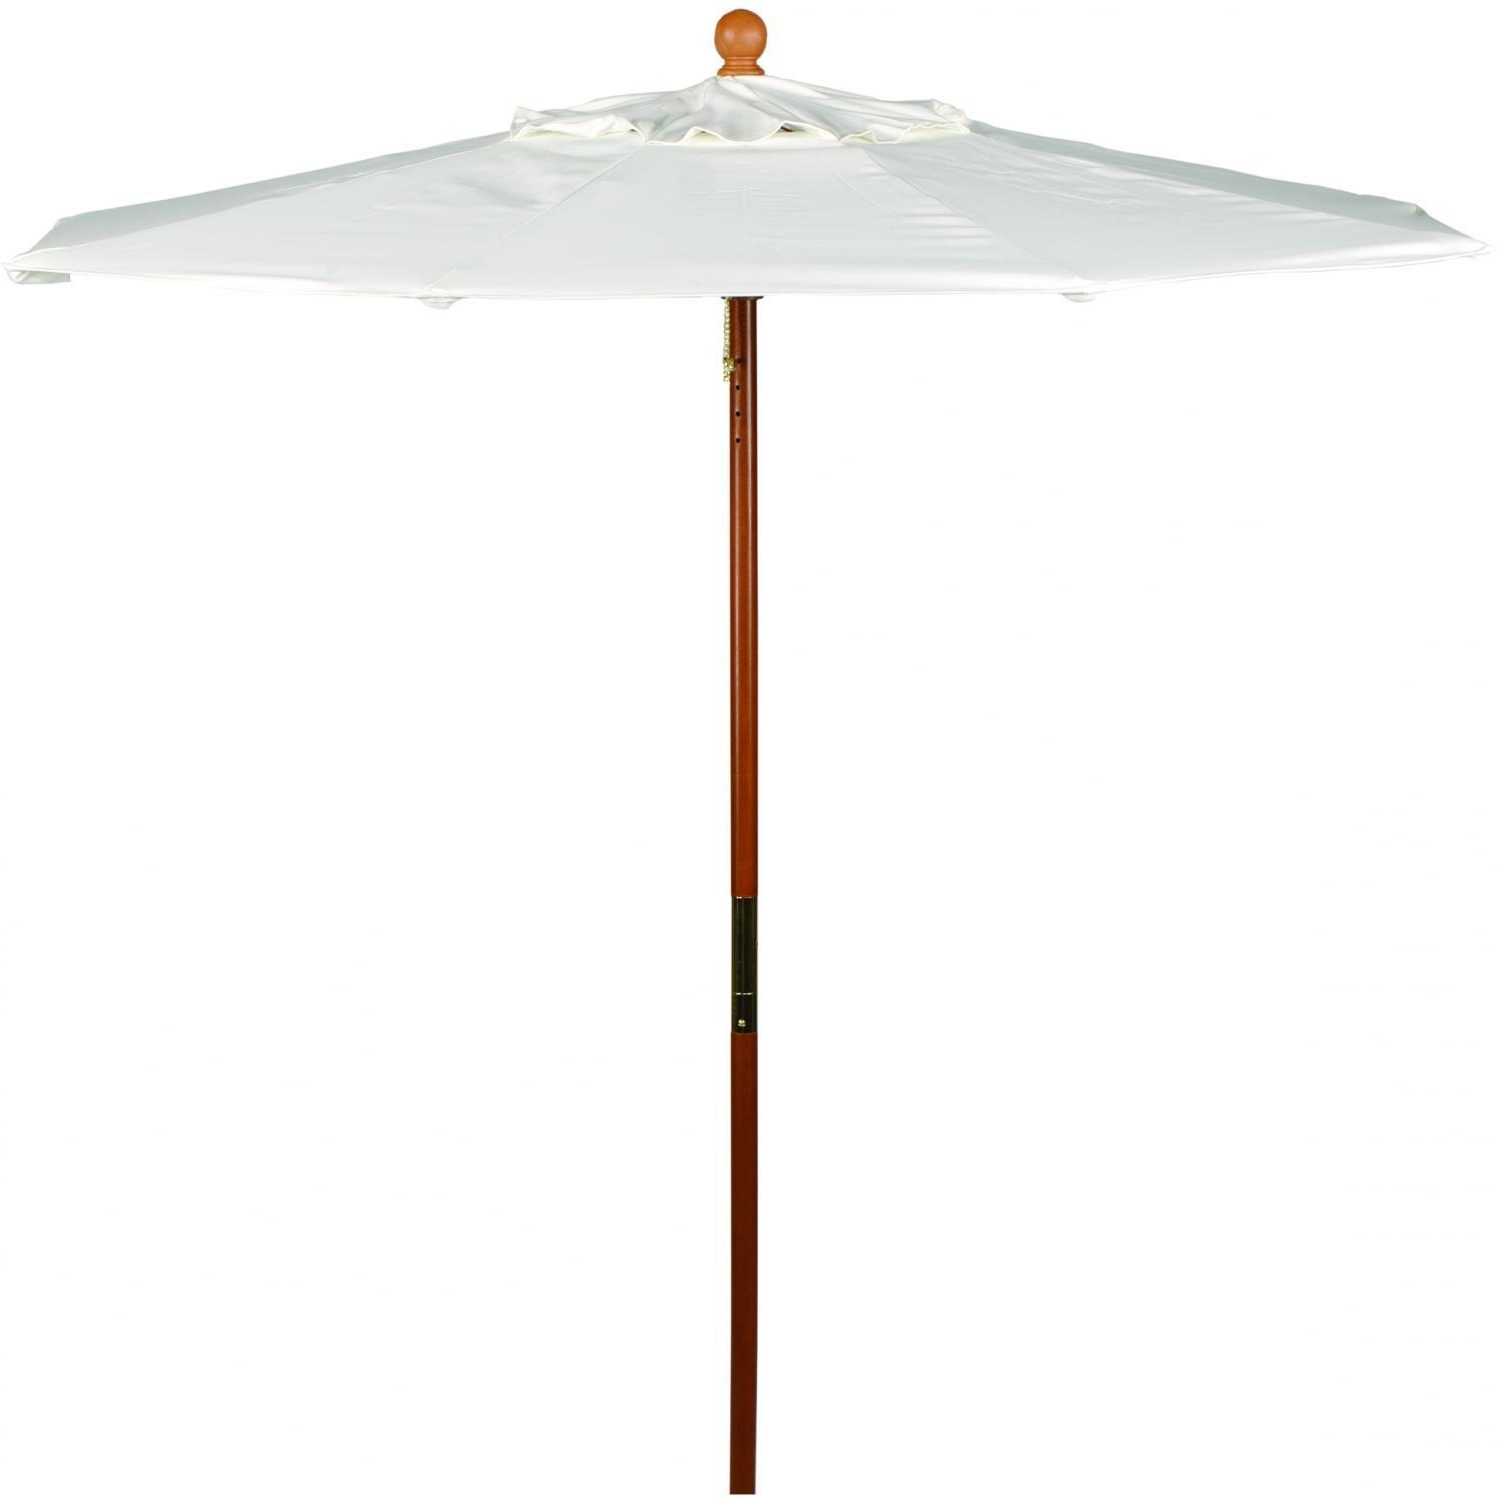 Most Recently Released Jewel Patio Umbrellas For 49 6 Foot Patio Umbrellas, 6#039; Patio Umbrellas Market Umbrellas (View 13 of 20)